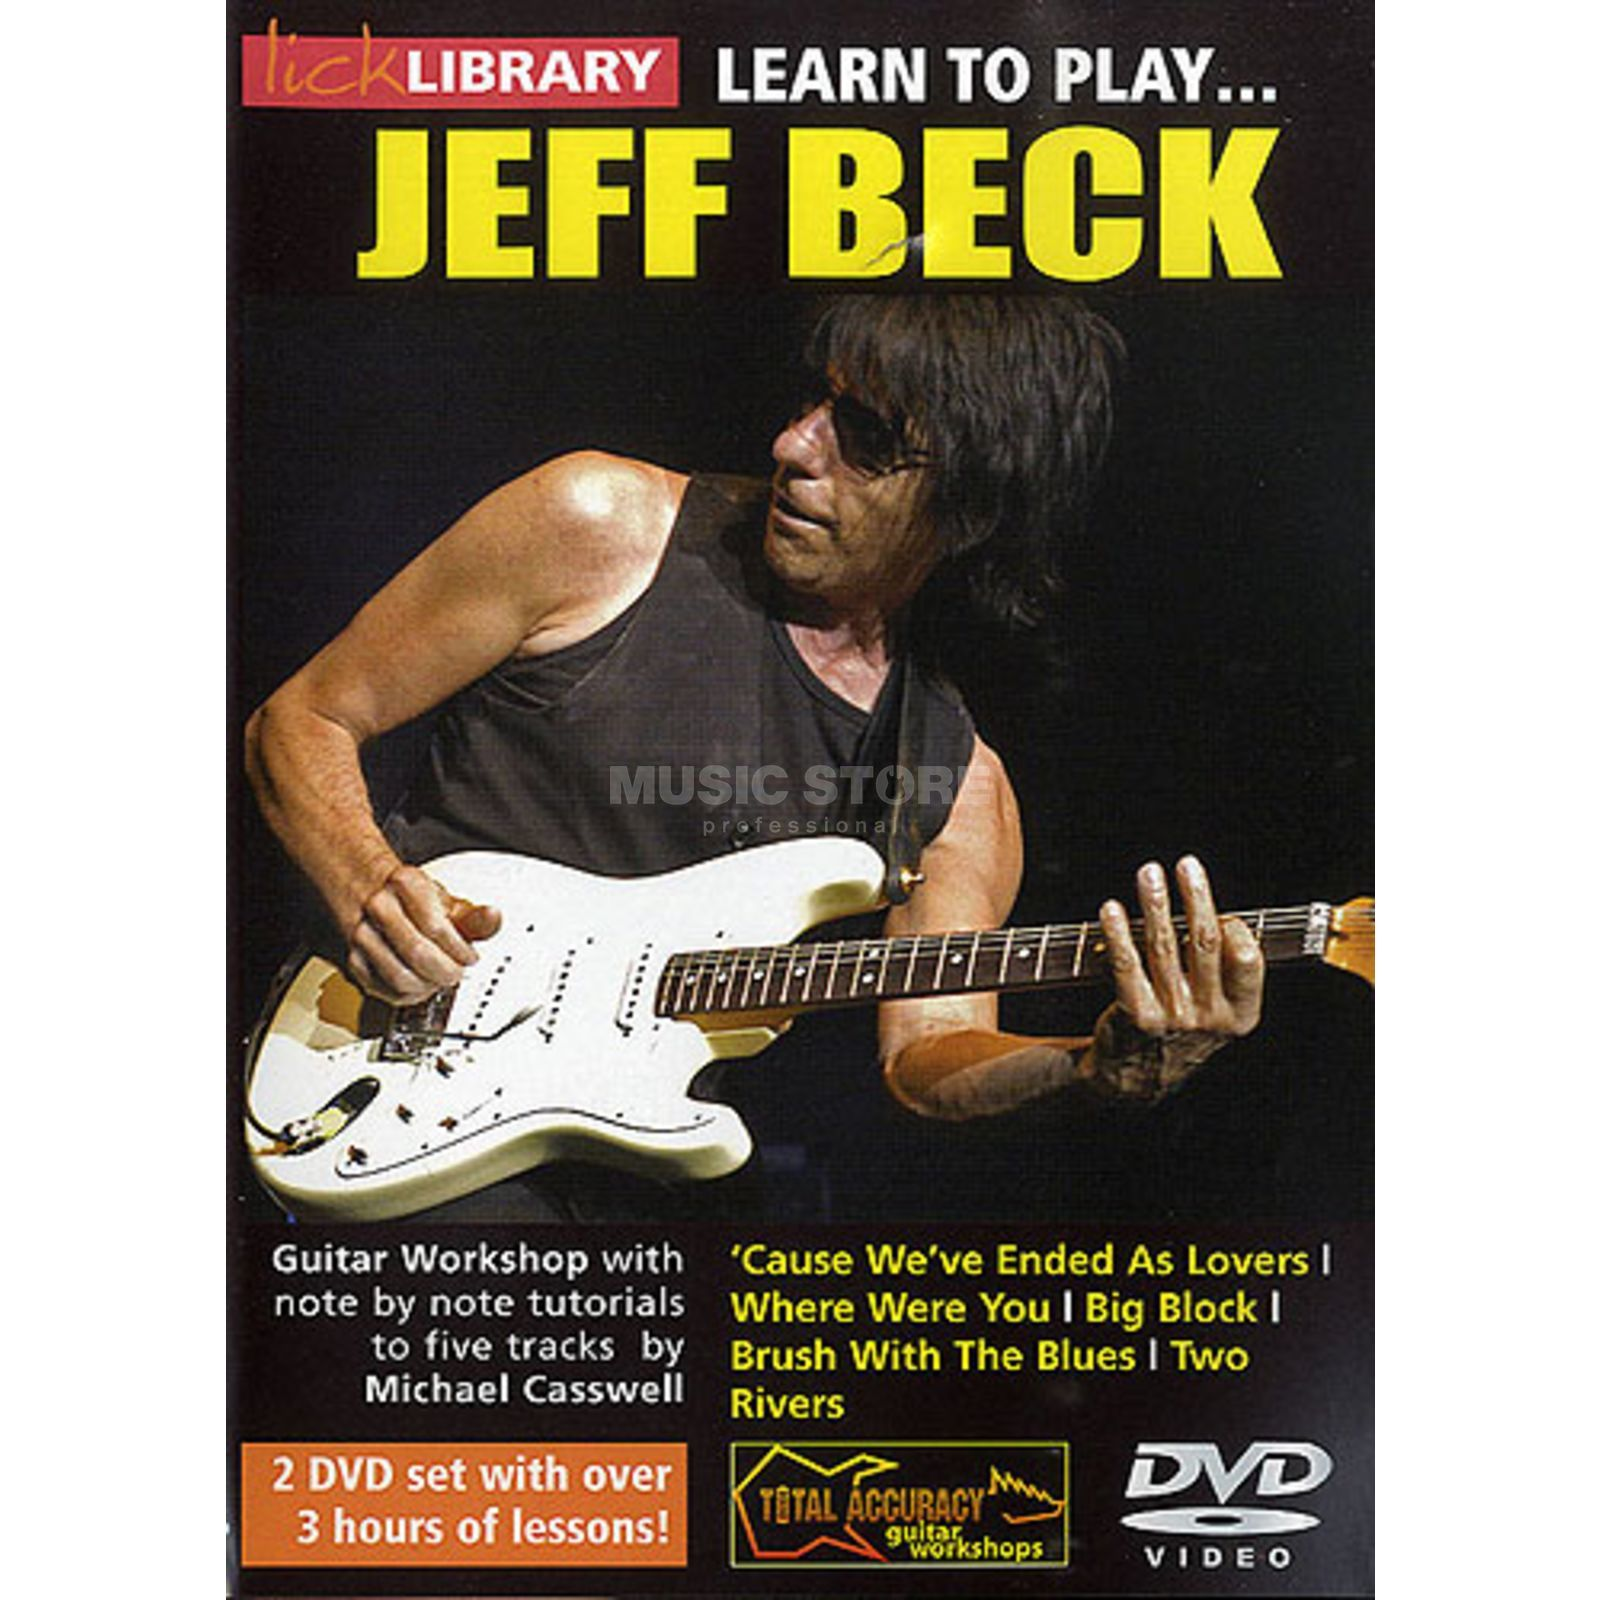 Roadrock International Lick Library: Learn to Play Jeff Beck DVD Produktbild